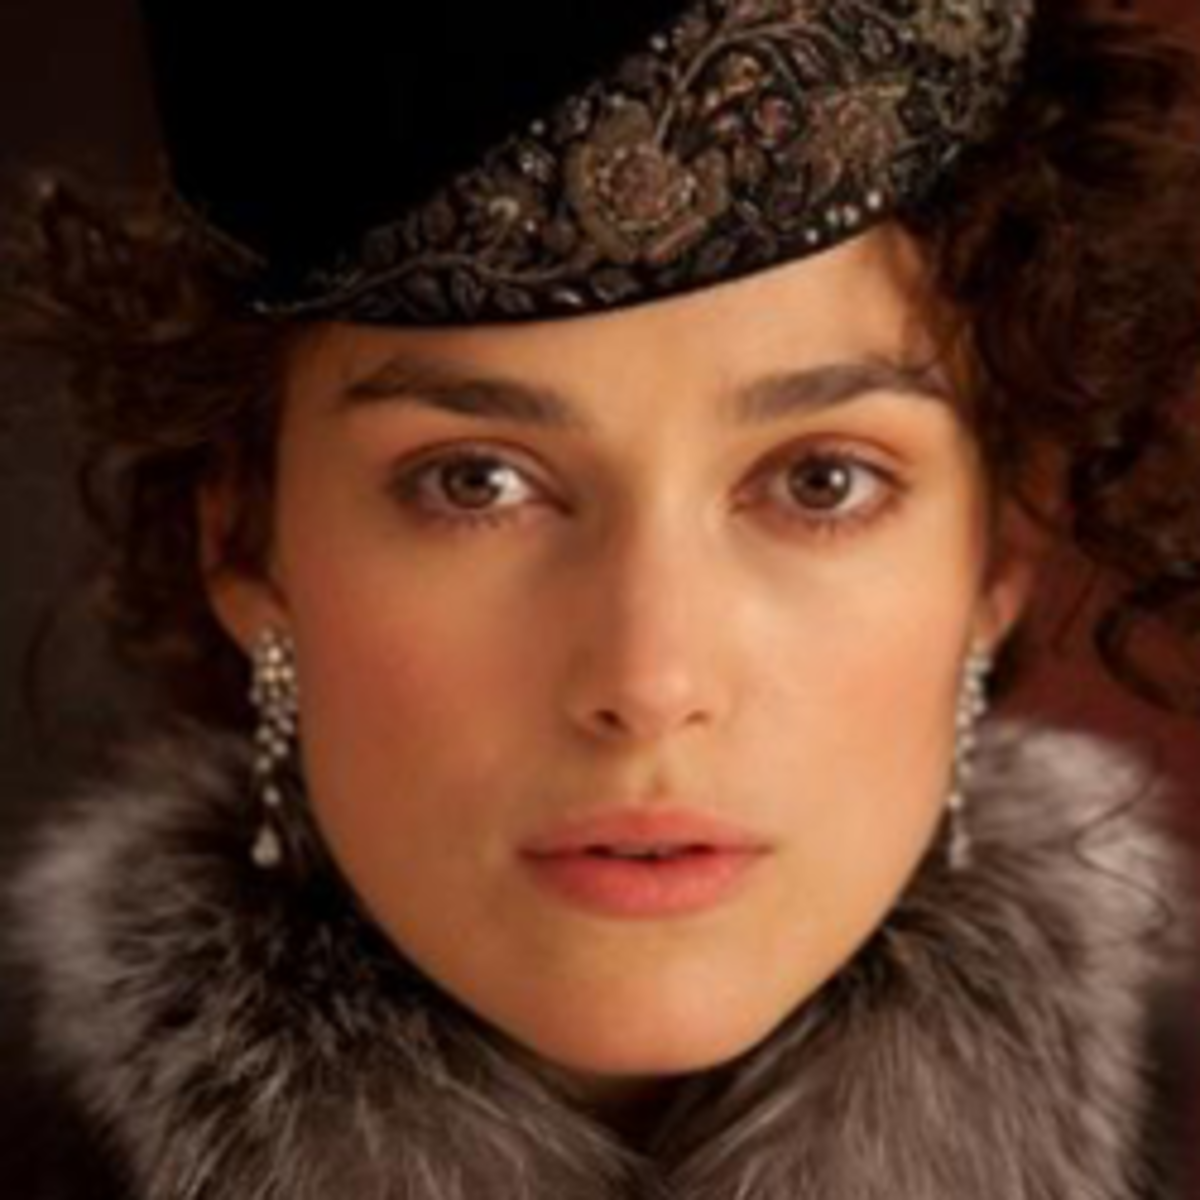 Depictions of Anna Karenina